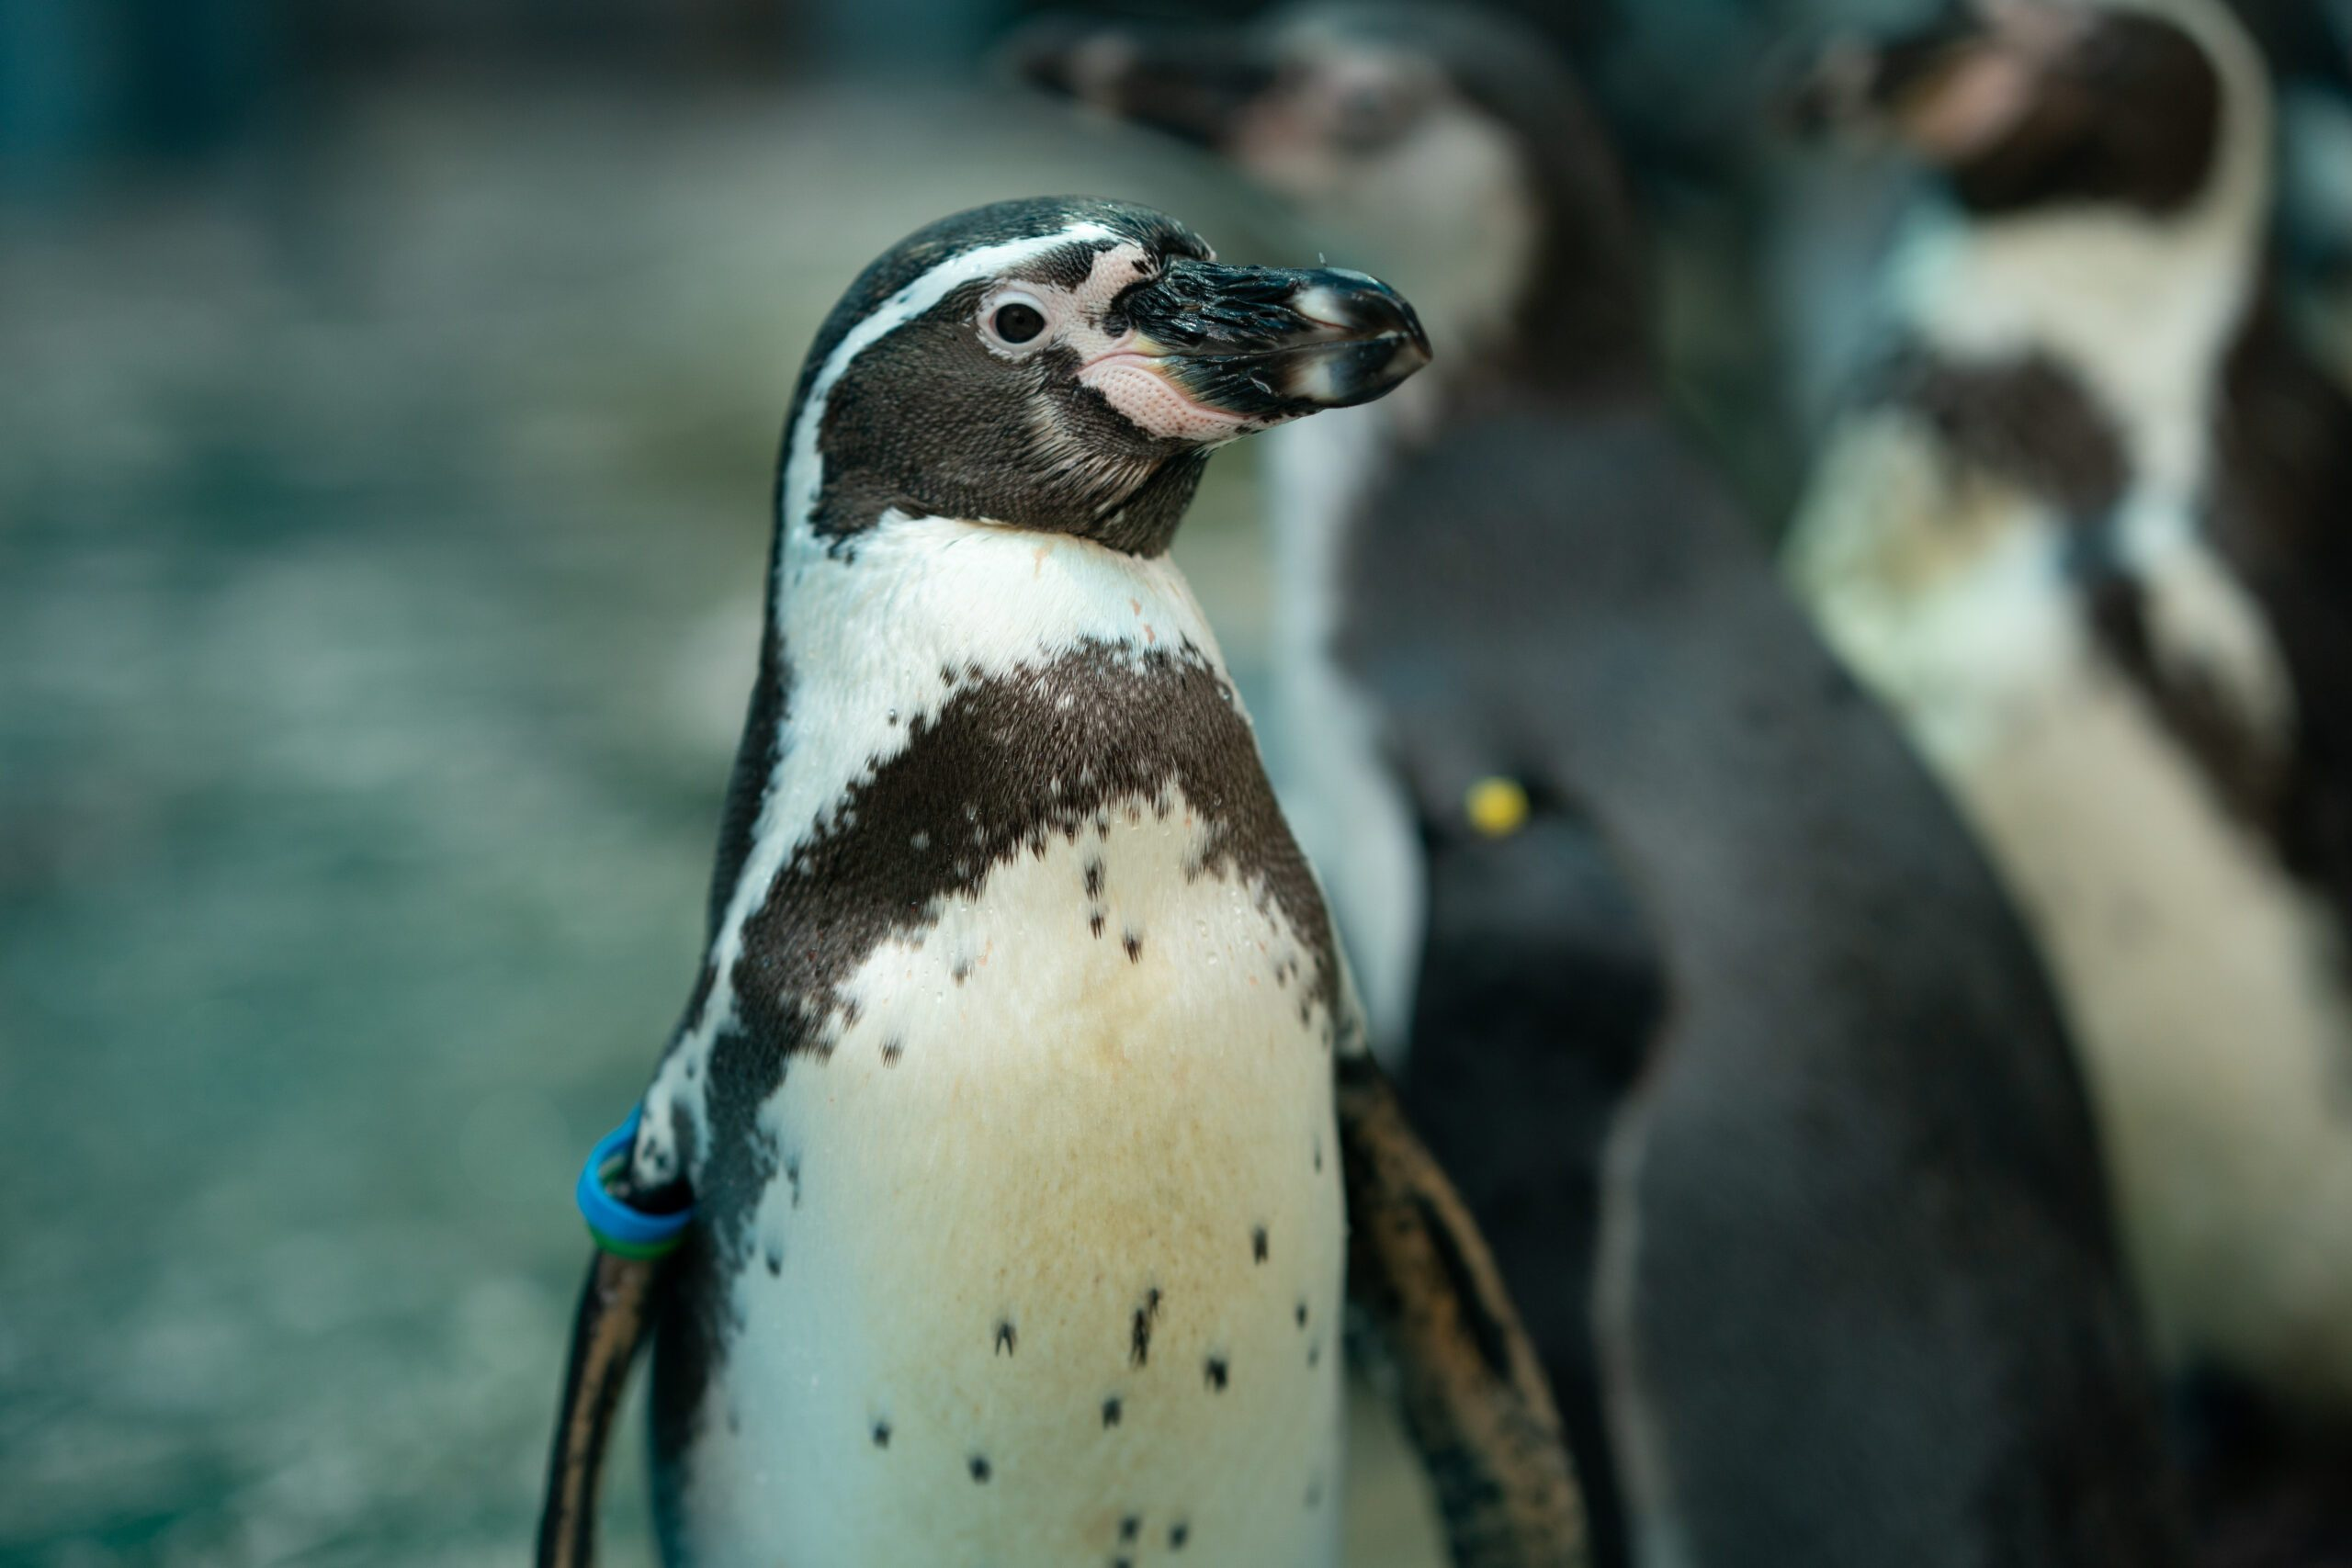 UK Thief Who Sold Stolen Penguins on Facebook Sent to Prison